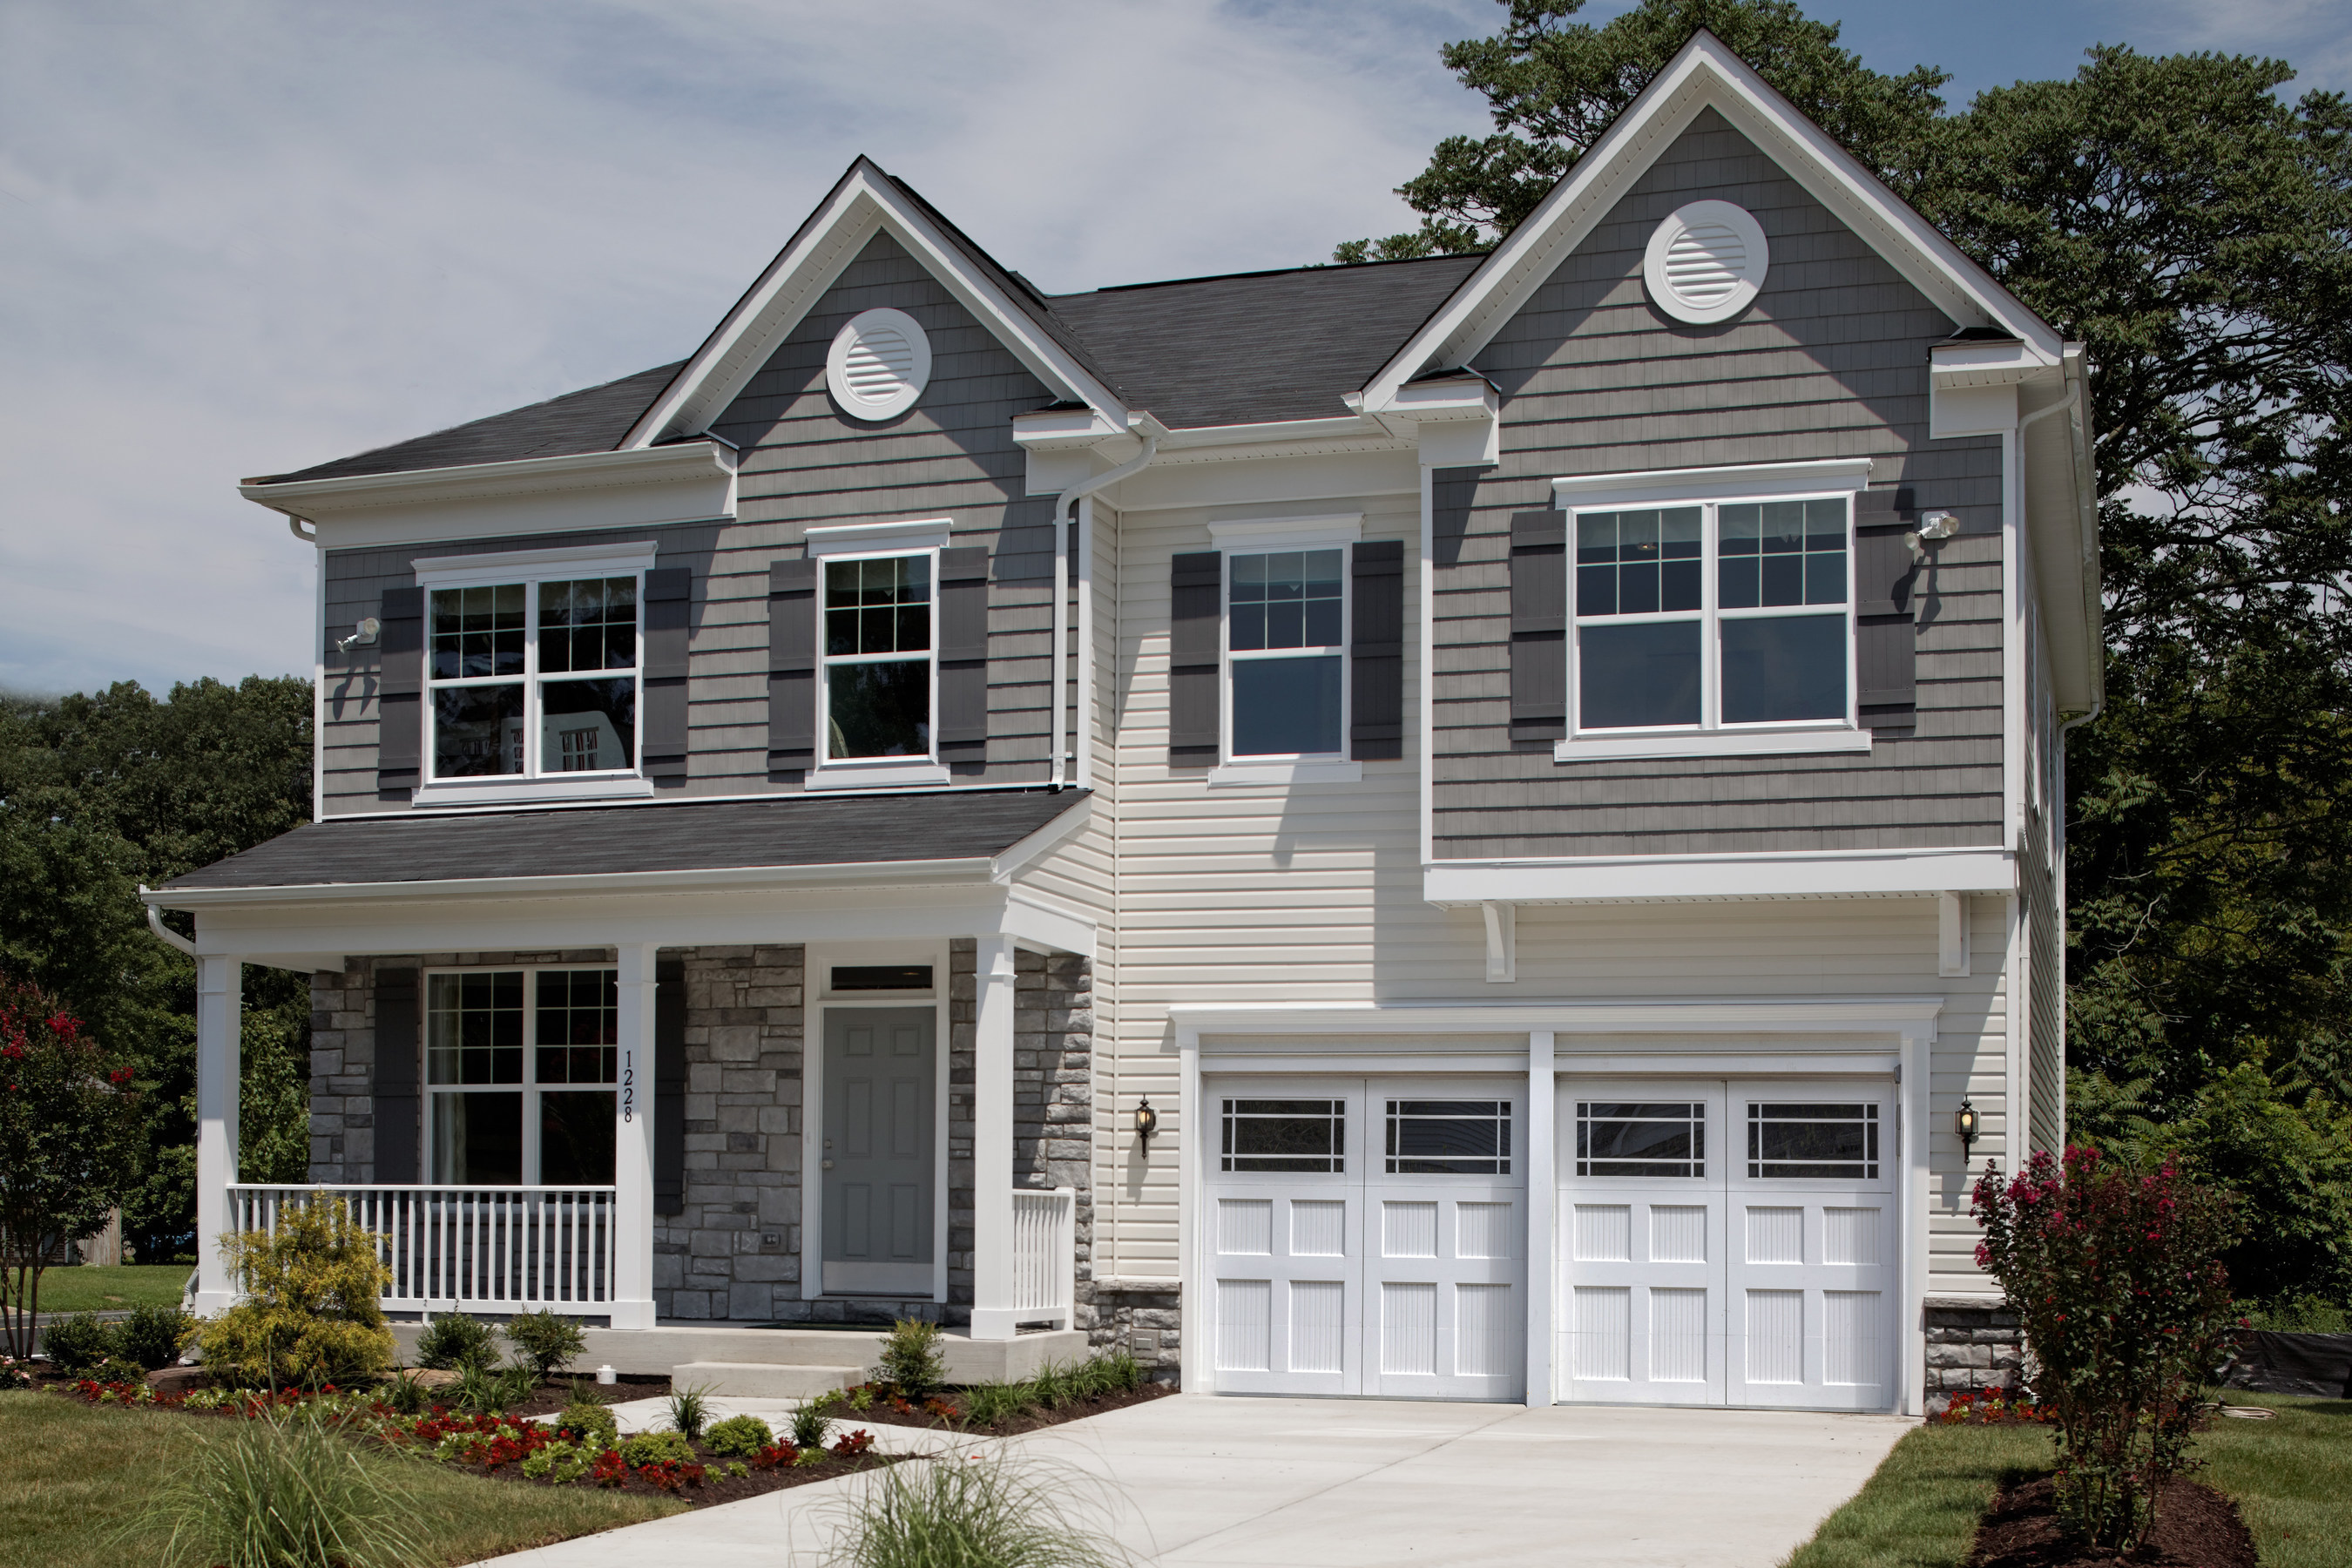 St. Charles, MD Reports Record Sales Of 269 New Homes In 2015